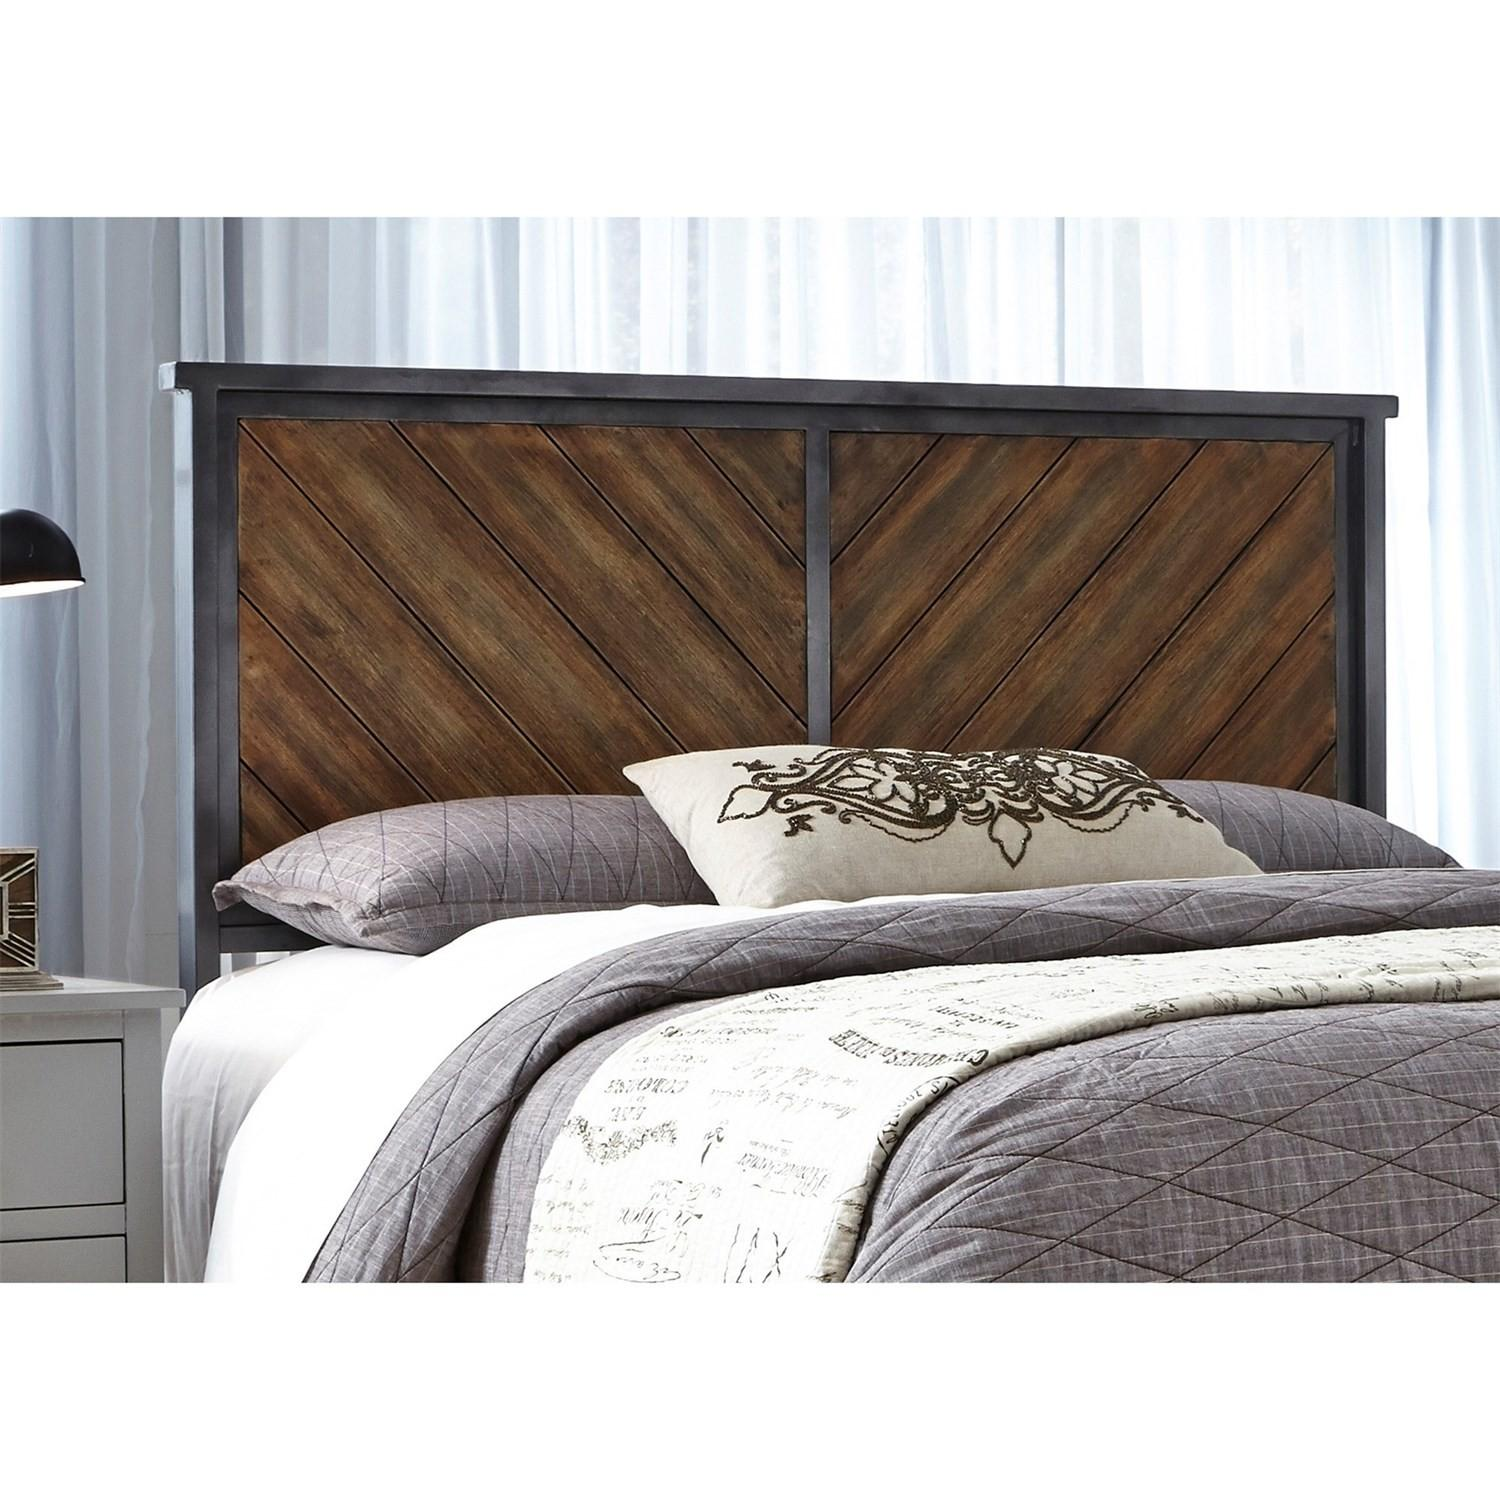 Fashion Bed Group B Braden Headboard Rustic